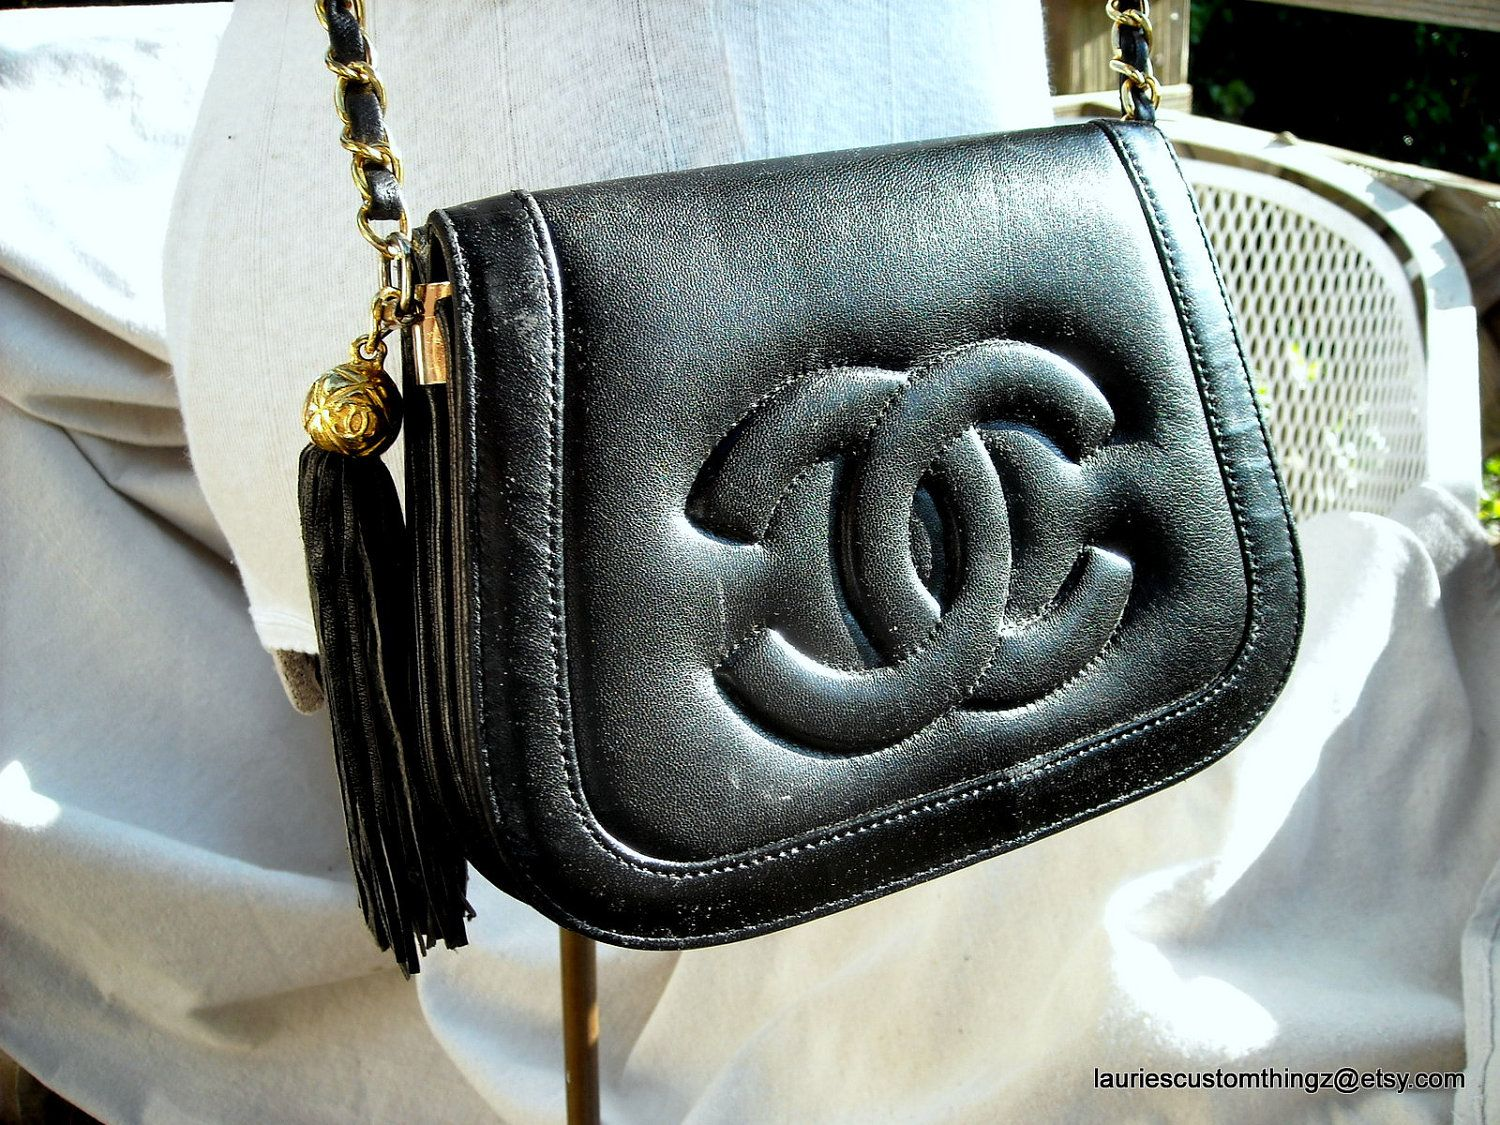 1d1285b4c58a0a Vintage Chanel flap bag with tassel. #chanel #vintage #timeless #flapbag #cc